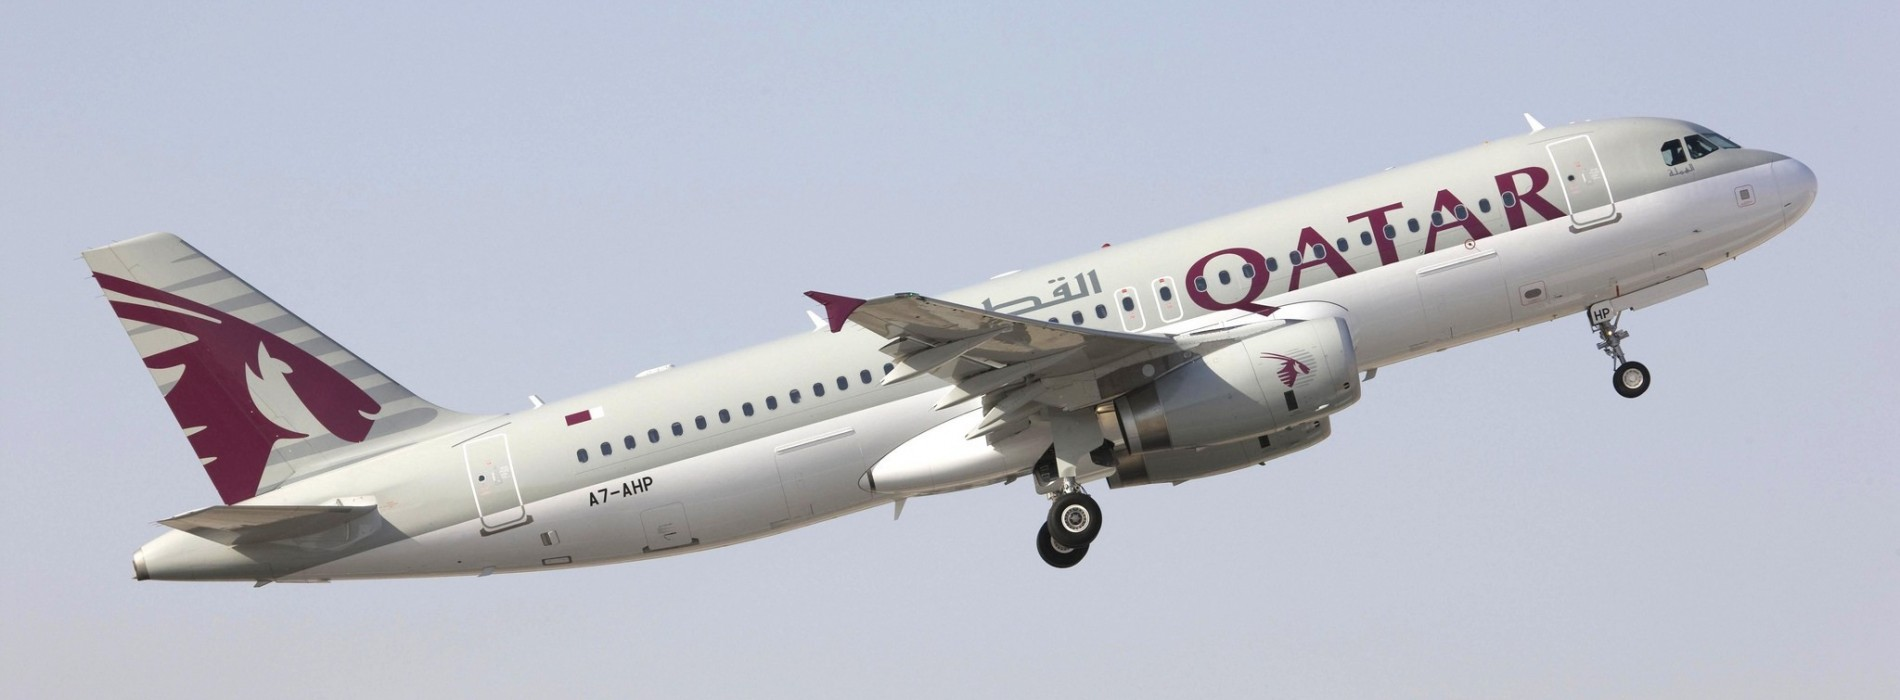 Qatar Airways yet to apply for its plan to set up 100-plane airline in India